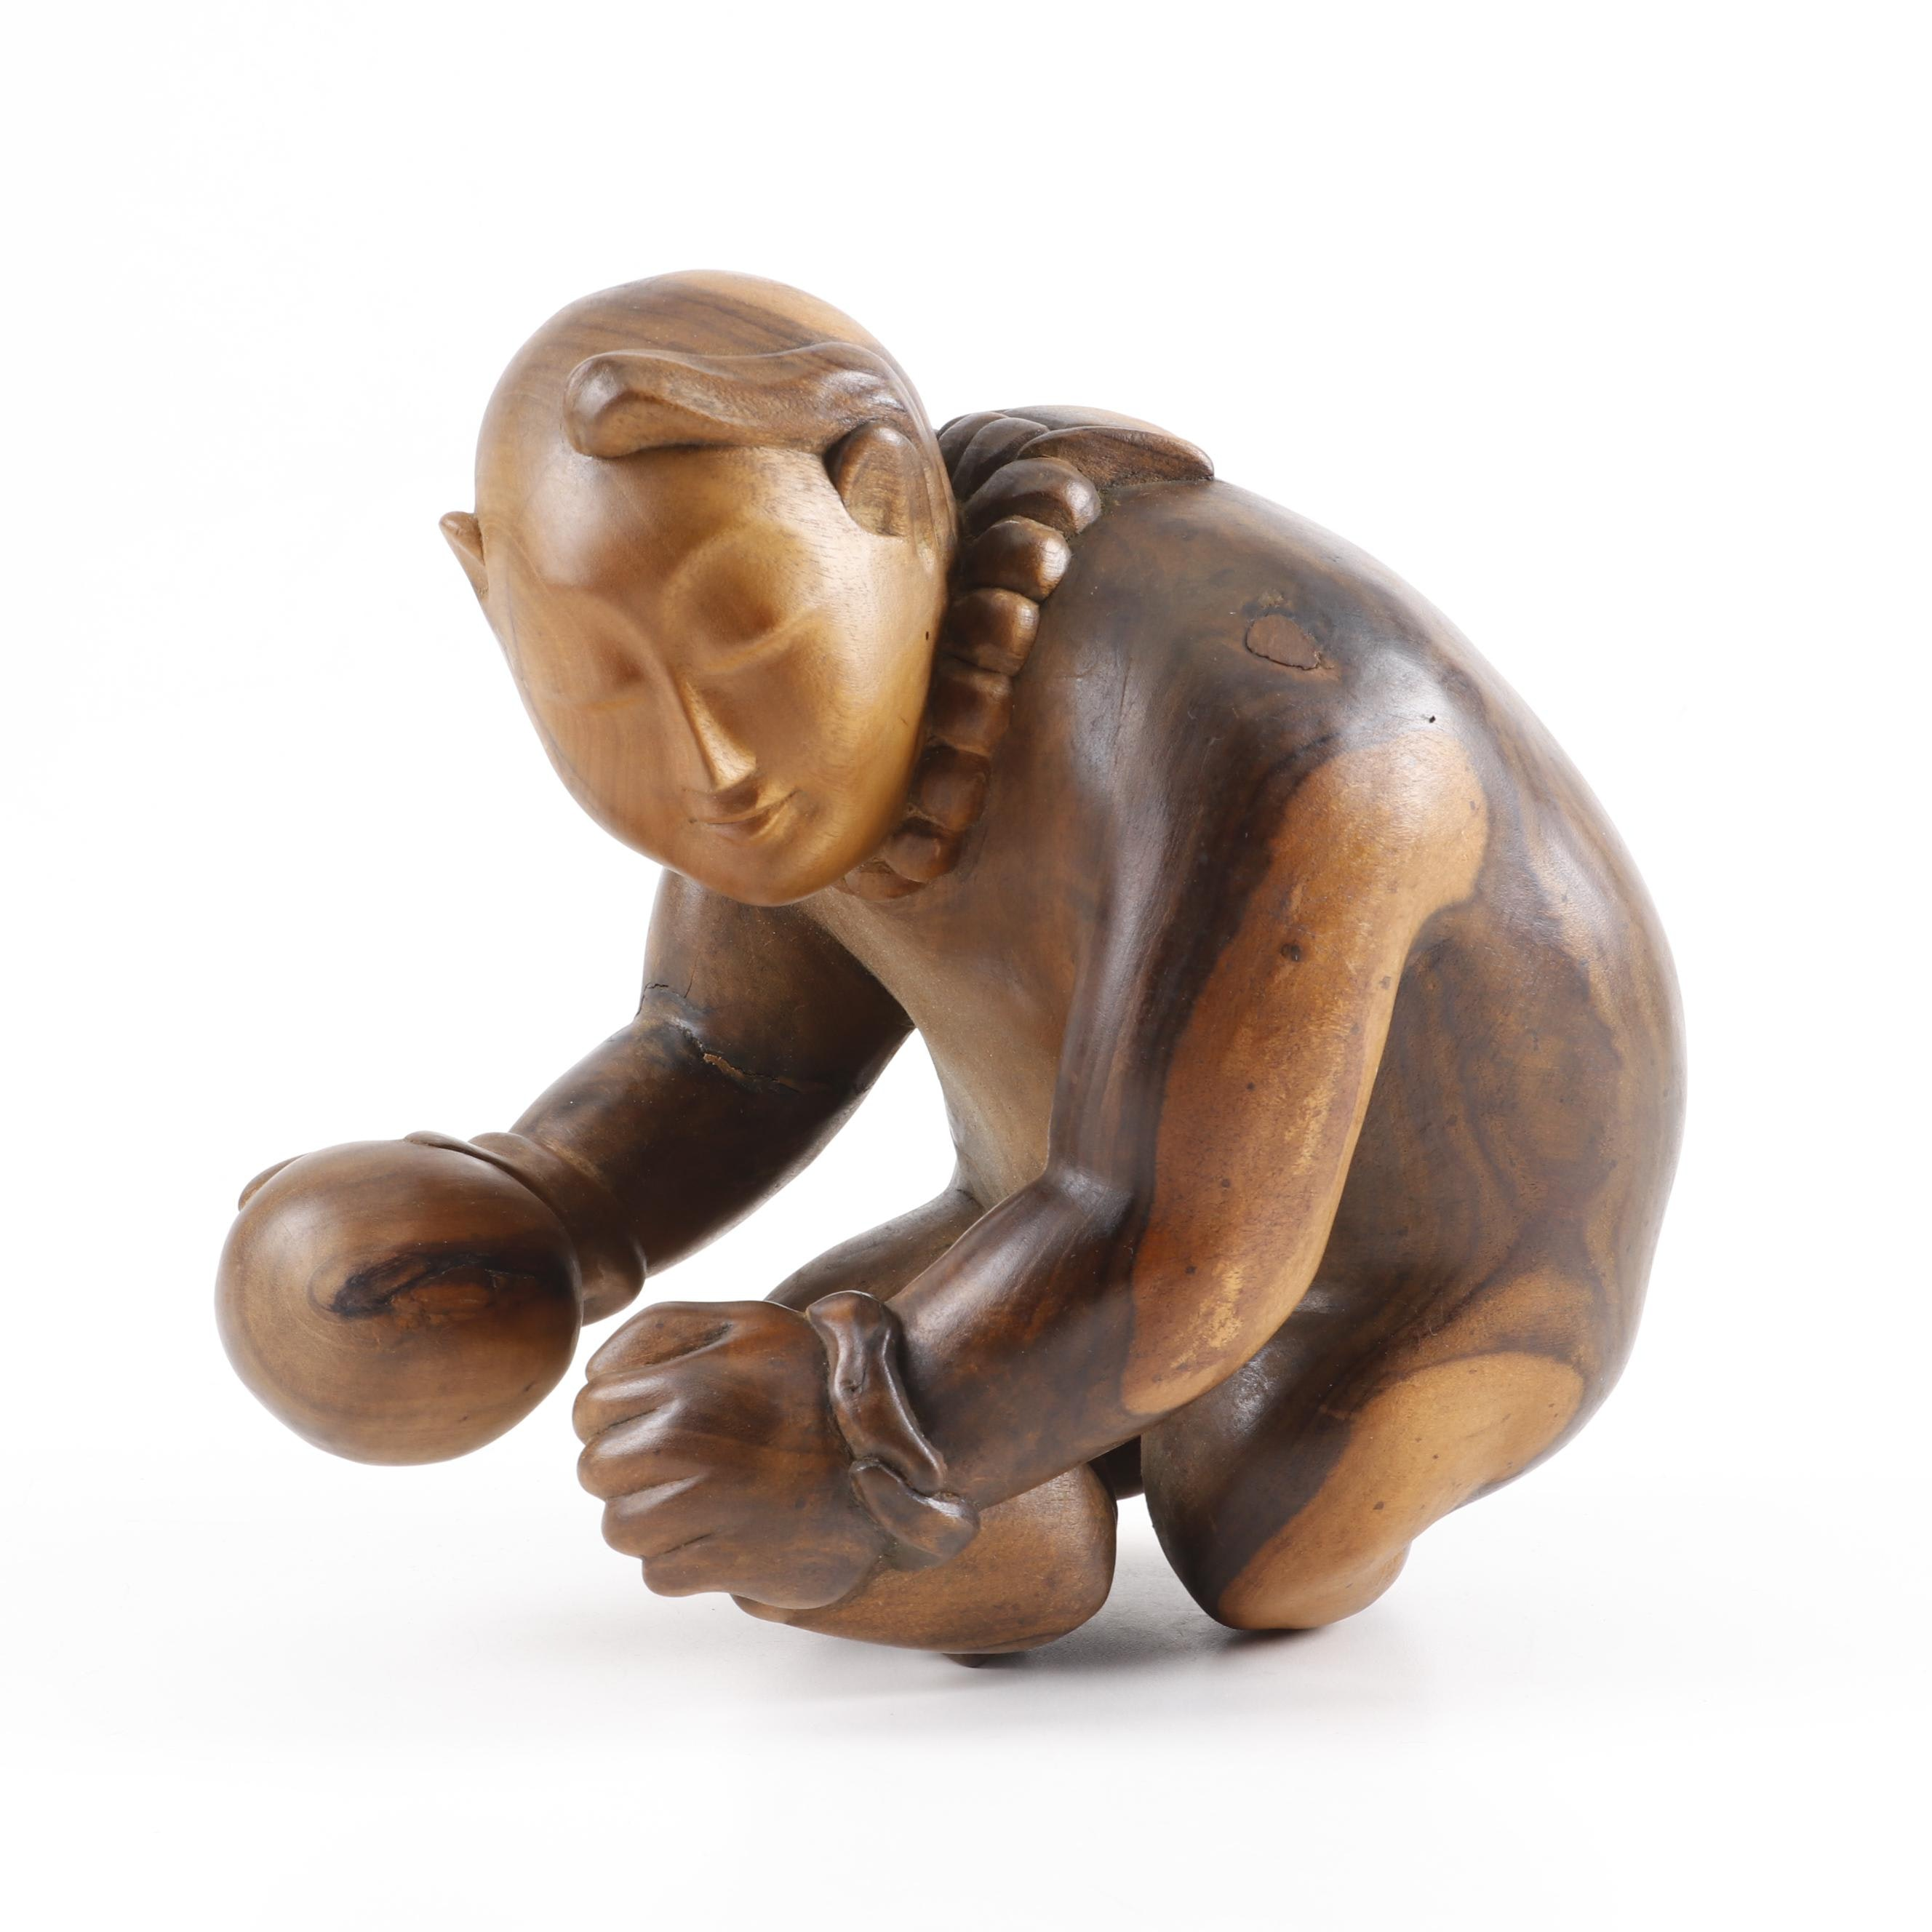 Carved Sheesham Wood Sculpture Depicting Buddha Holding Wealth Ball